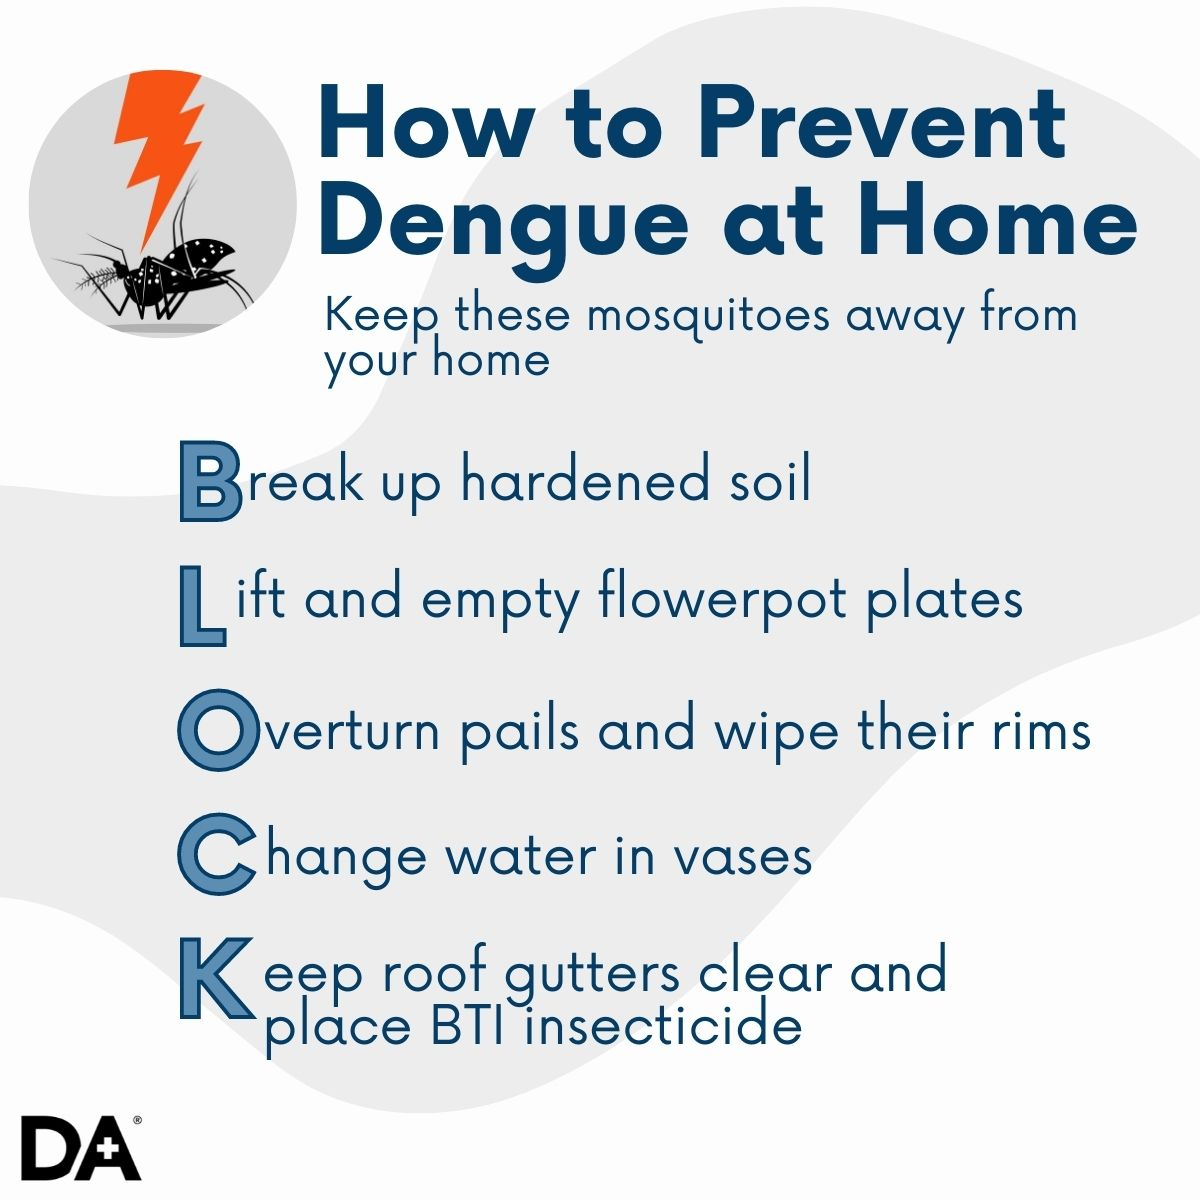 Prevent Dengue at Home in Sinagpore with these simple steps